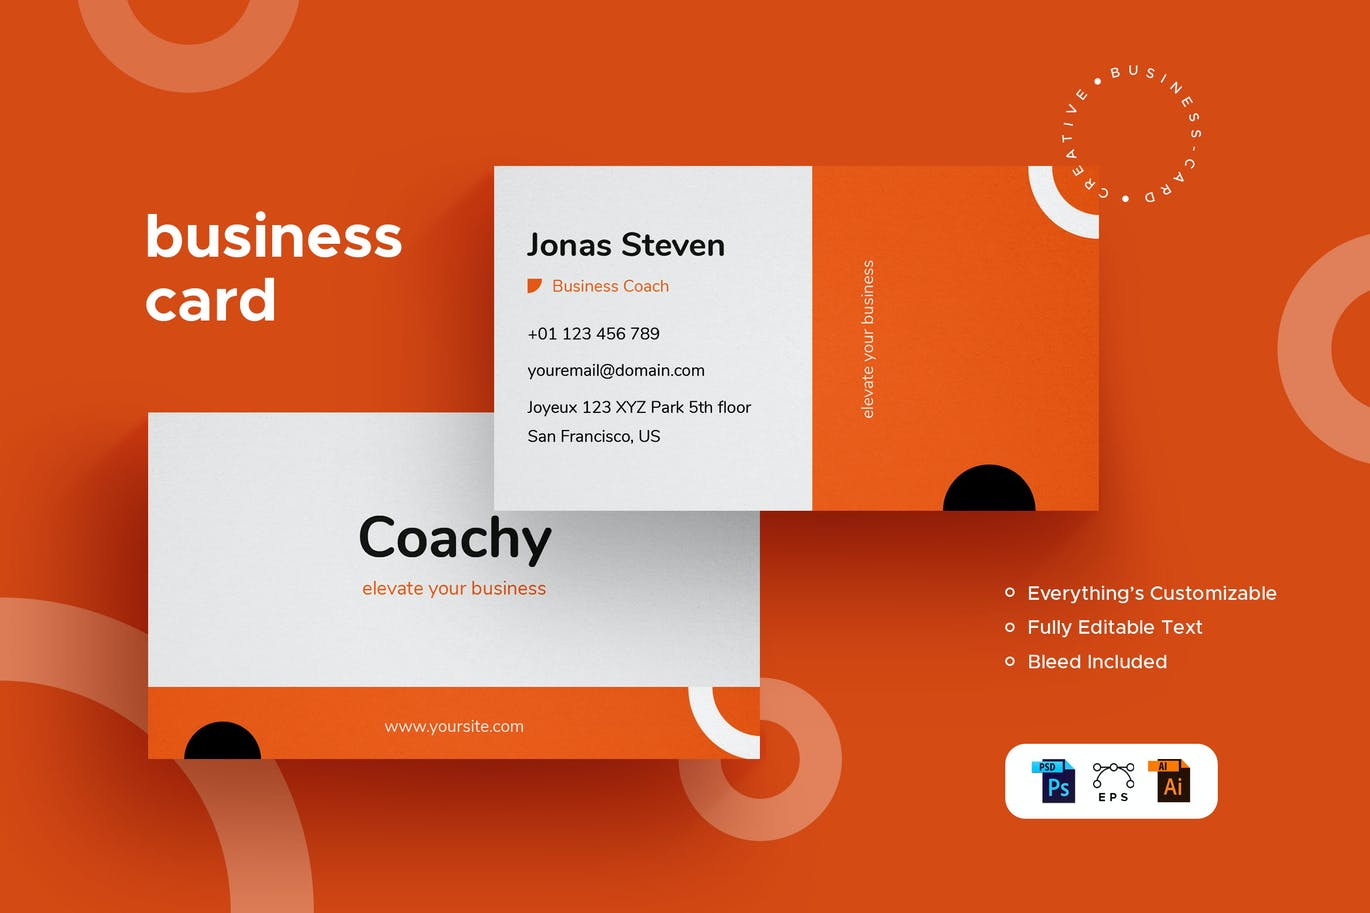 Coachy - Business Card - Stationery Kit